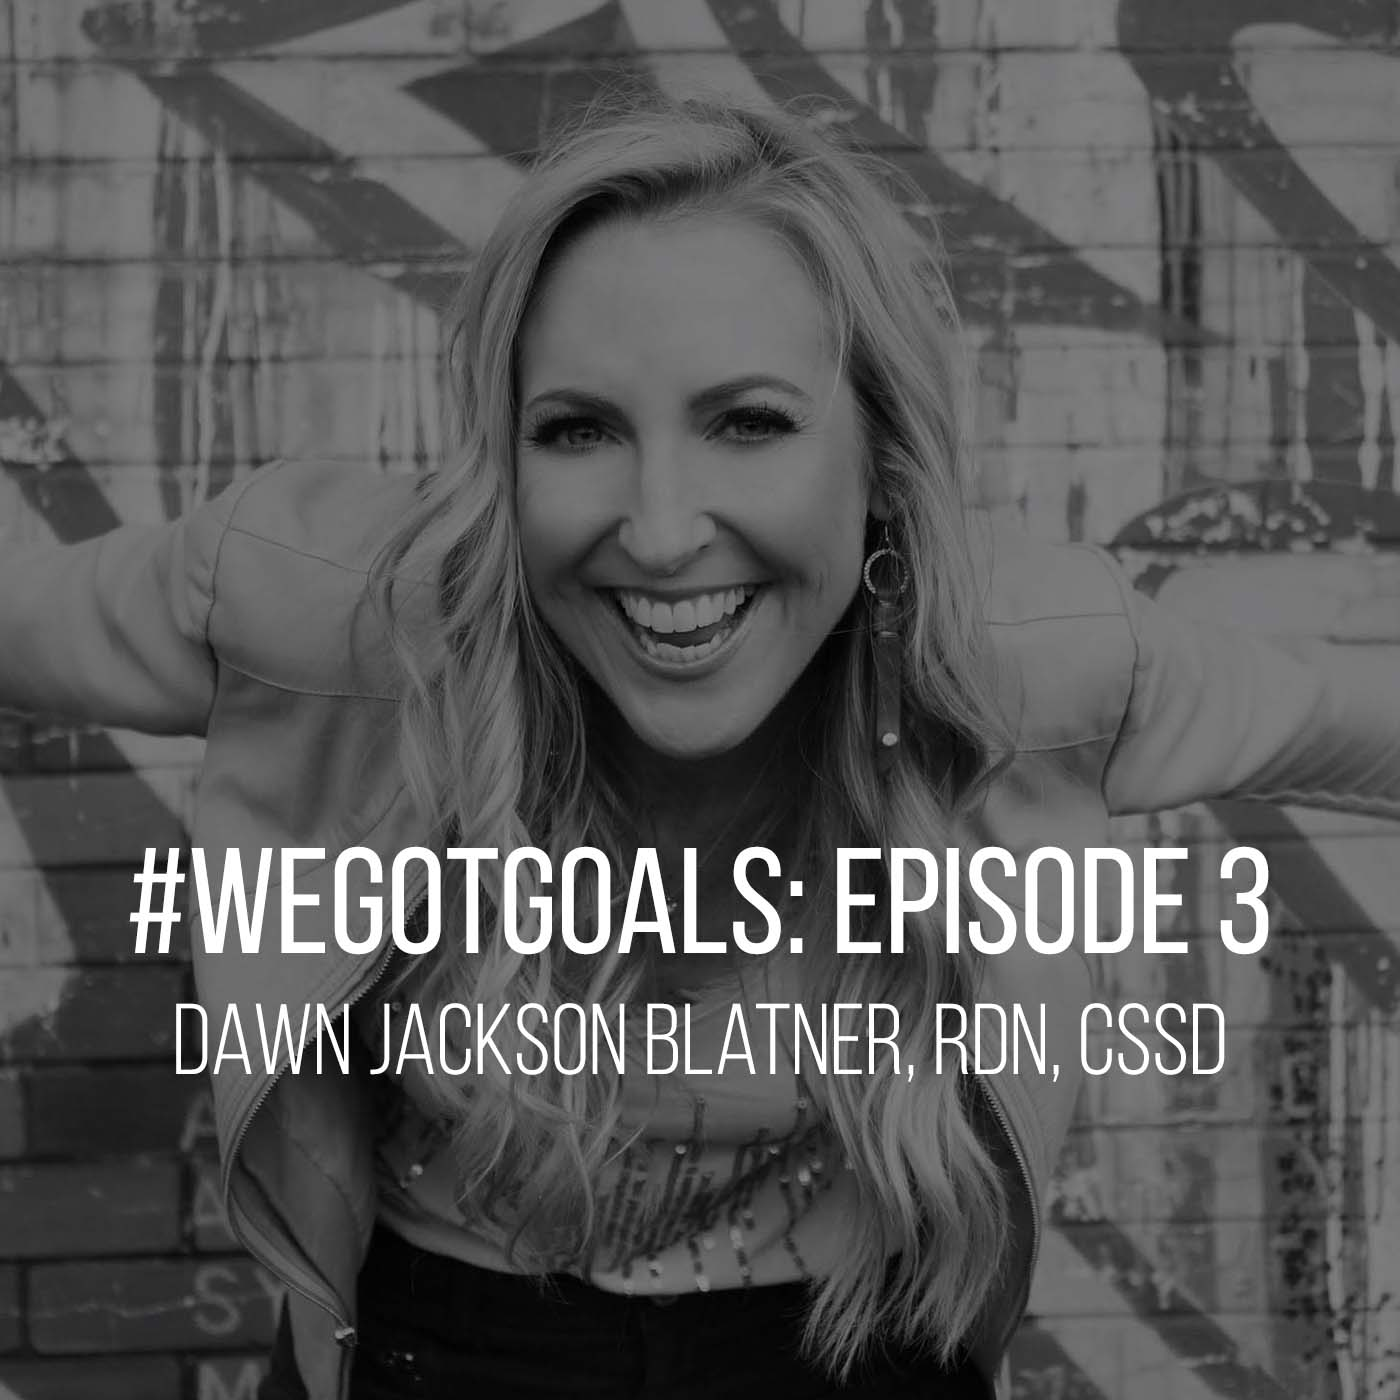 WeGotGoals_episode 3_Dawn Jackson Blatner